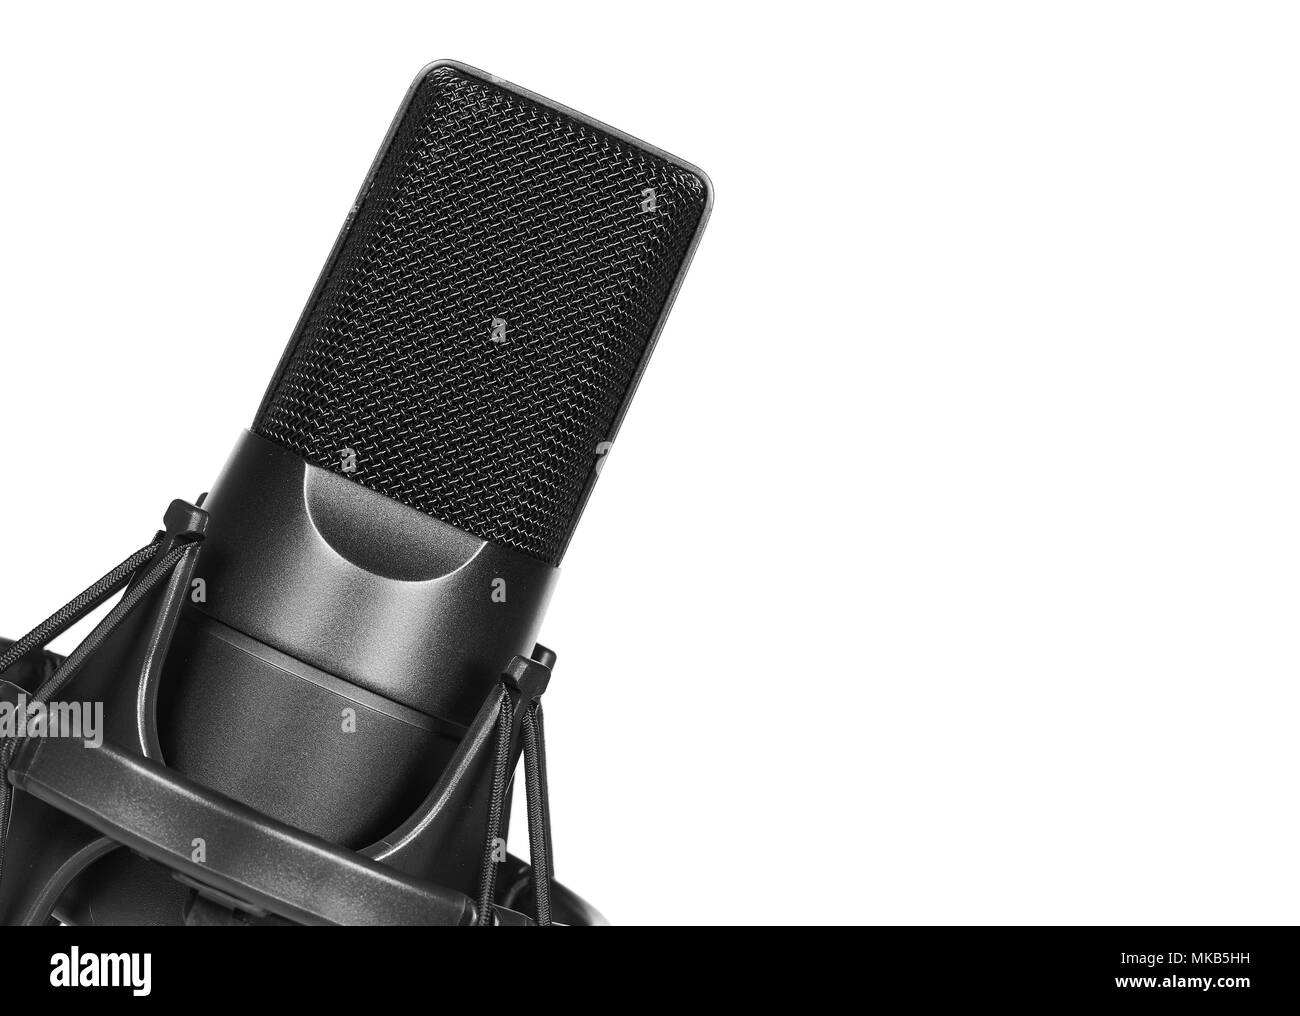 Studio condenser microphone close up. isolated on white background - Stock Image